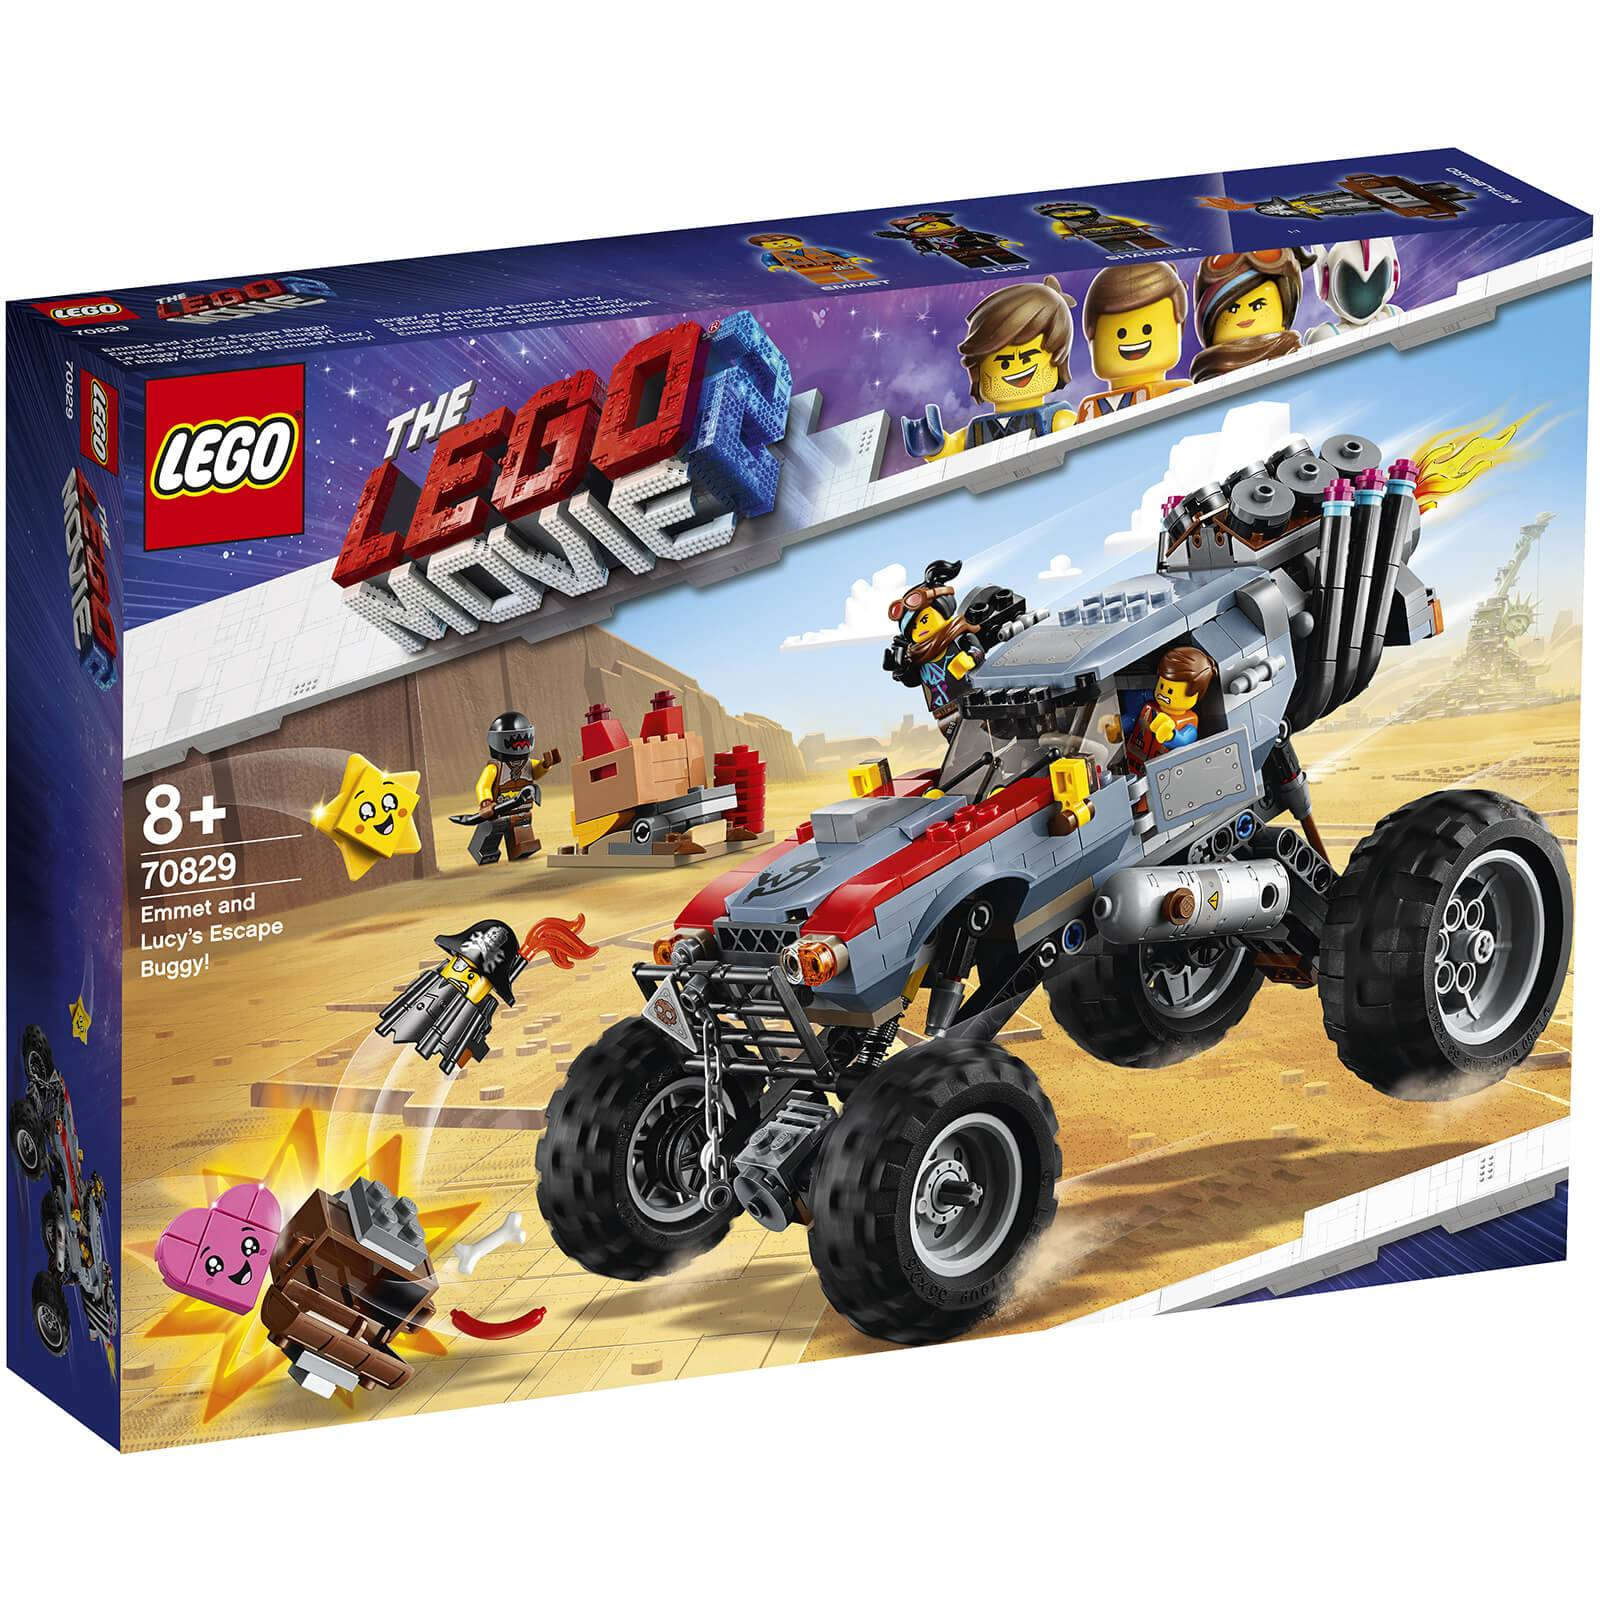 Lego Movie 2: Emmet and Lucy's Escape Buggy! (70829)